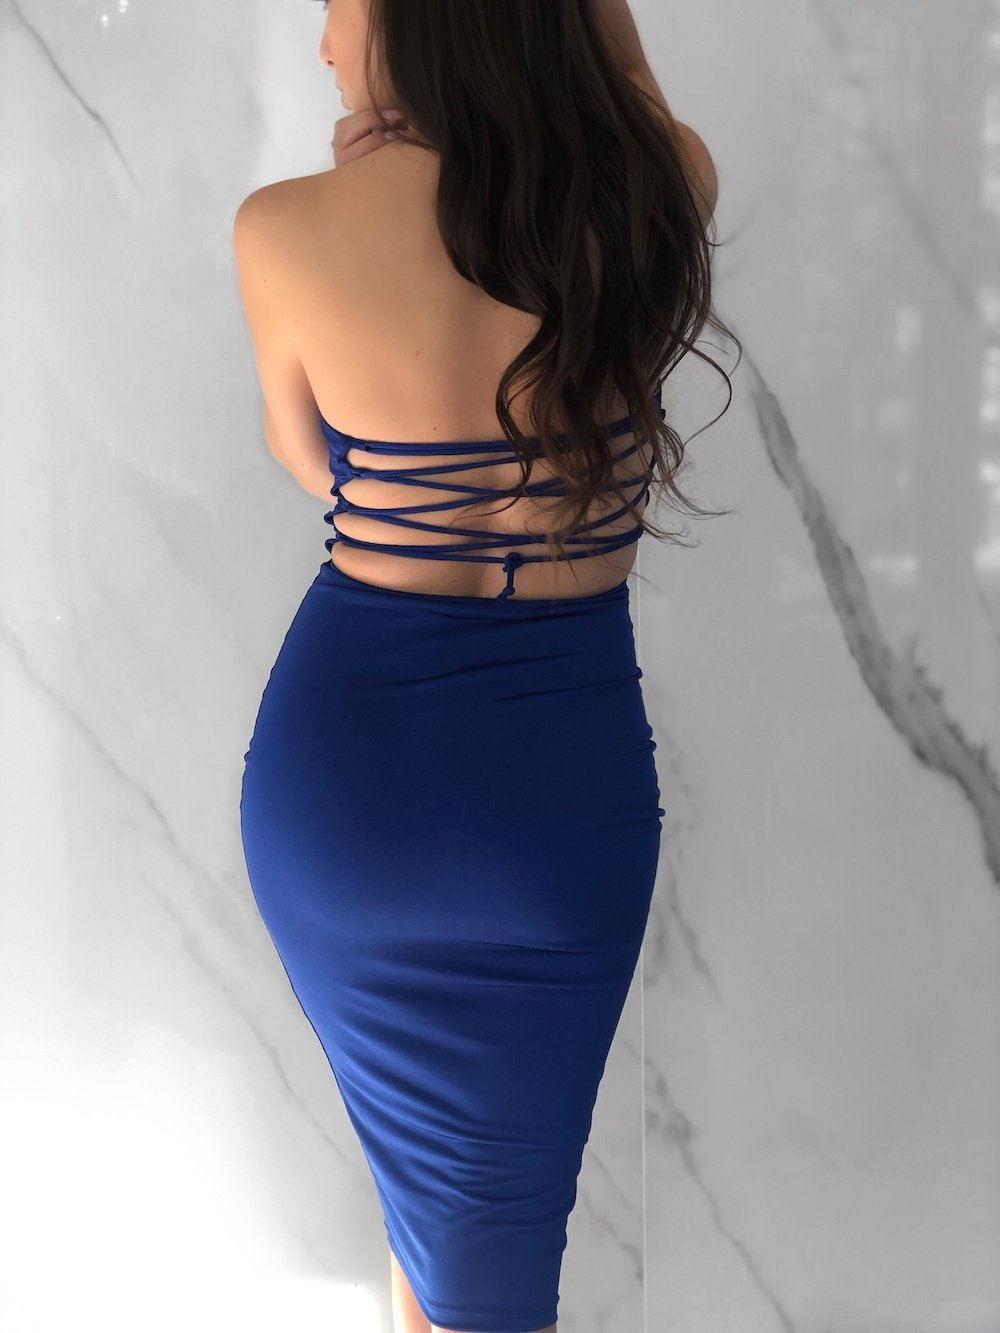 Ciel Dress, Women's Royal Blue Dresses